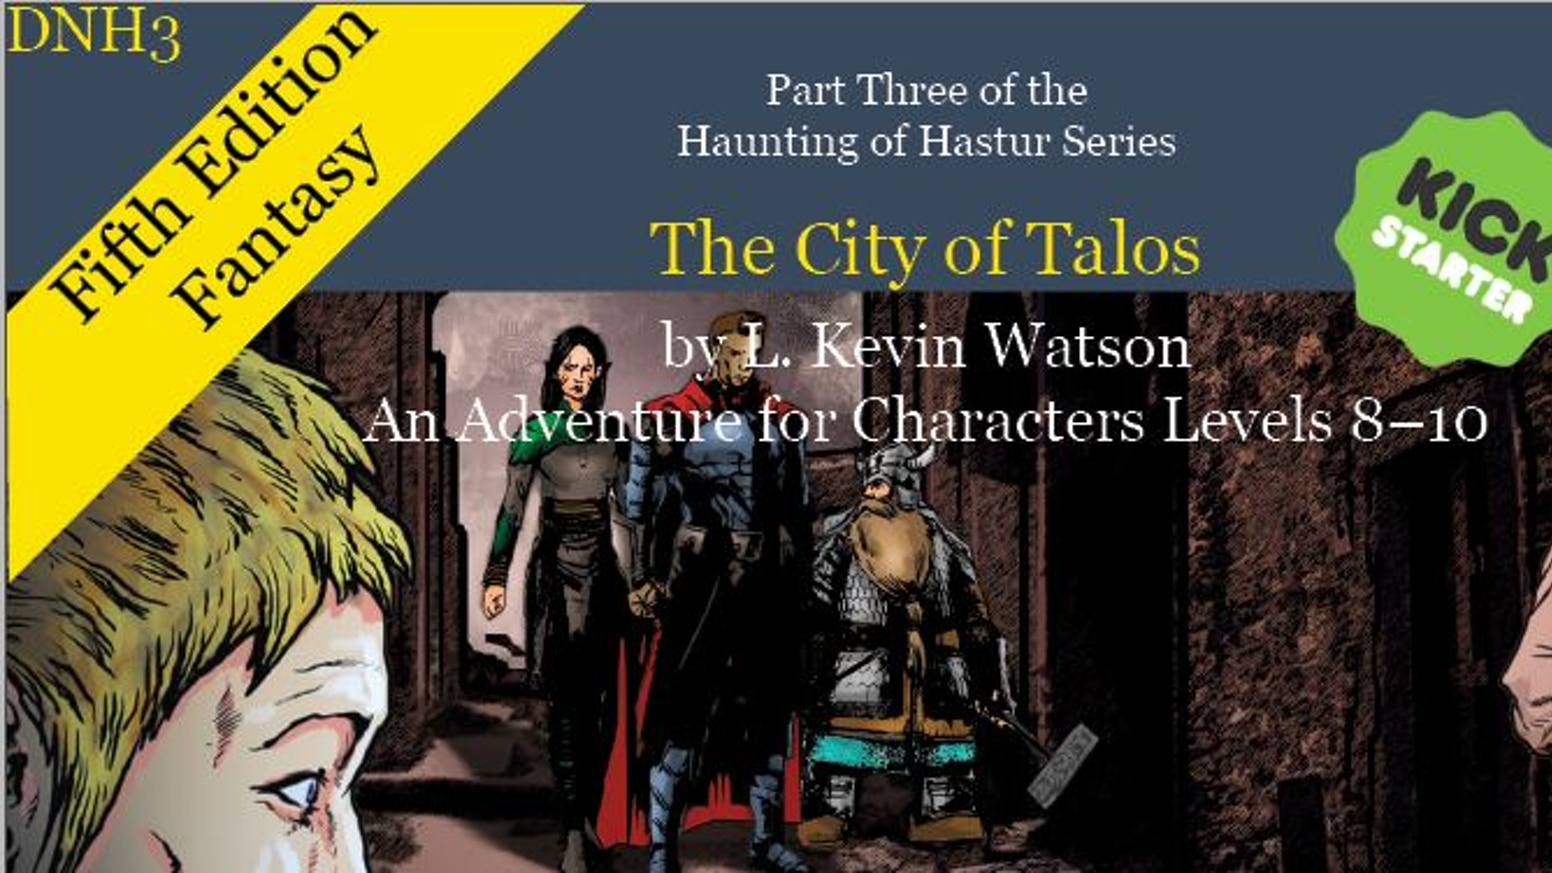 The third adventure in the Haunting of Hastur series. The City of Talos takes the party into the city and is the hub for adventures.